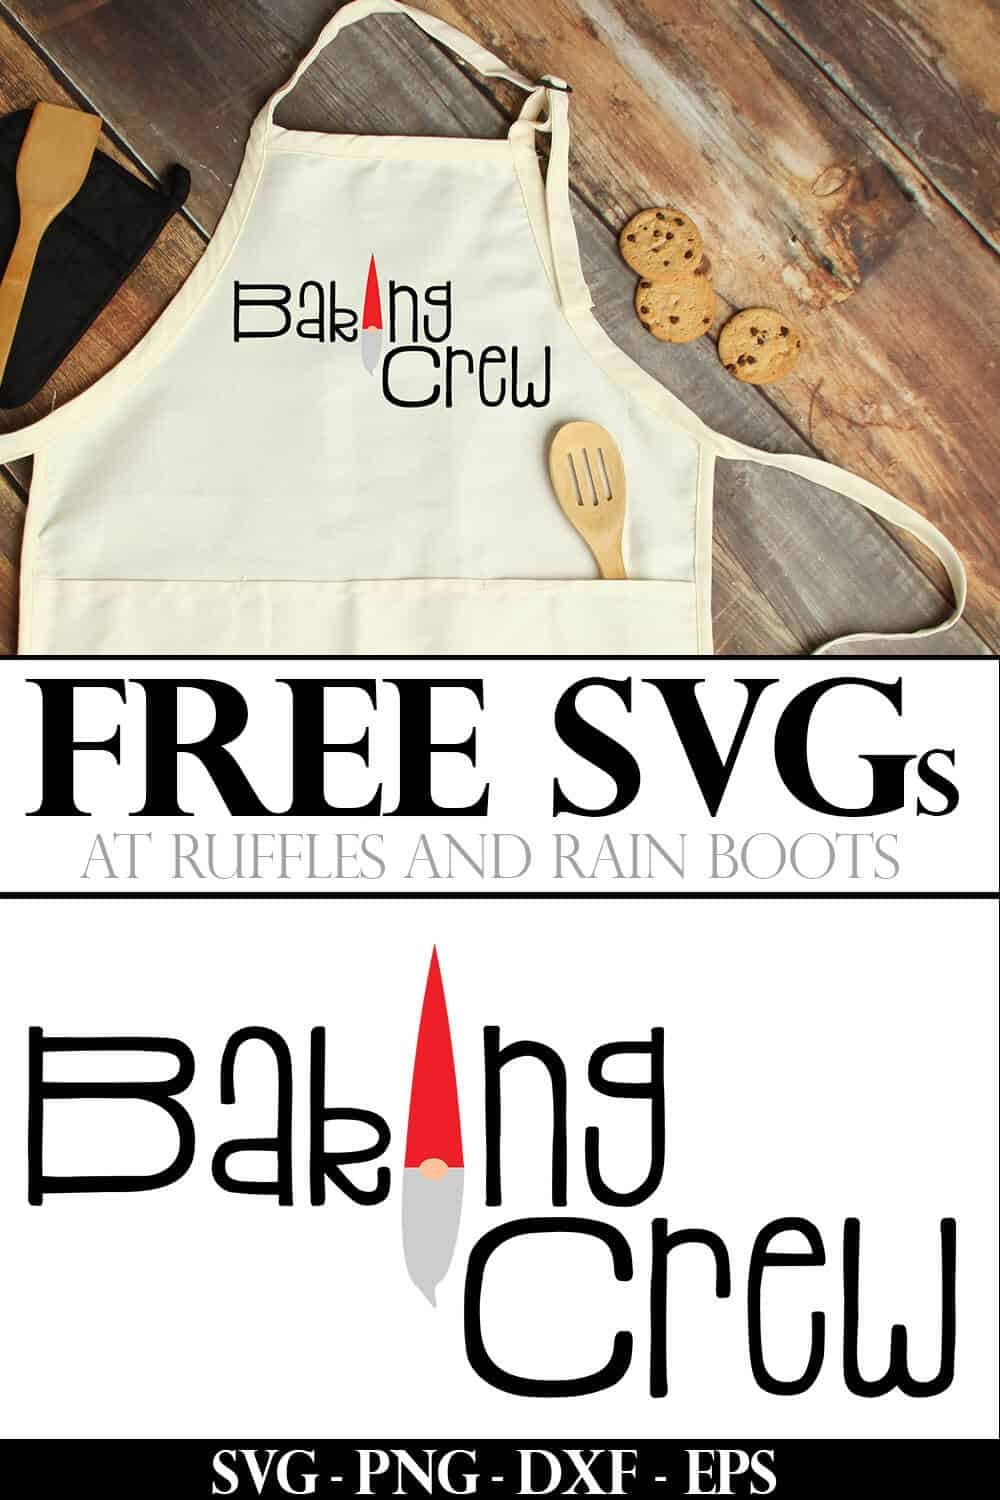 collage of baking crew svg for Christmas on an apron on a wood background with text which reads free svgs